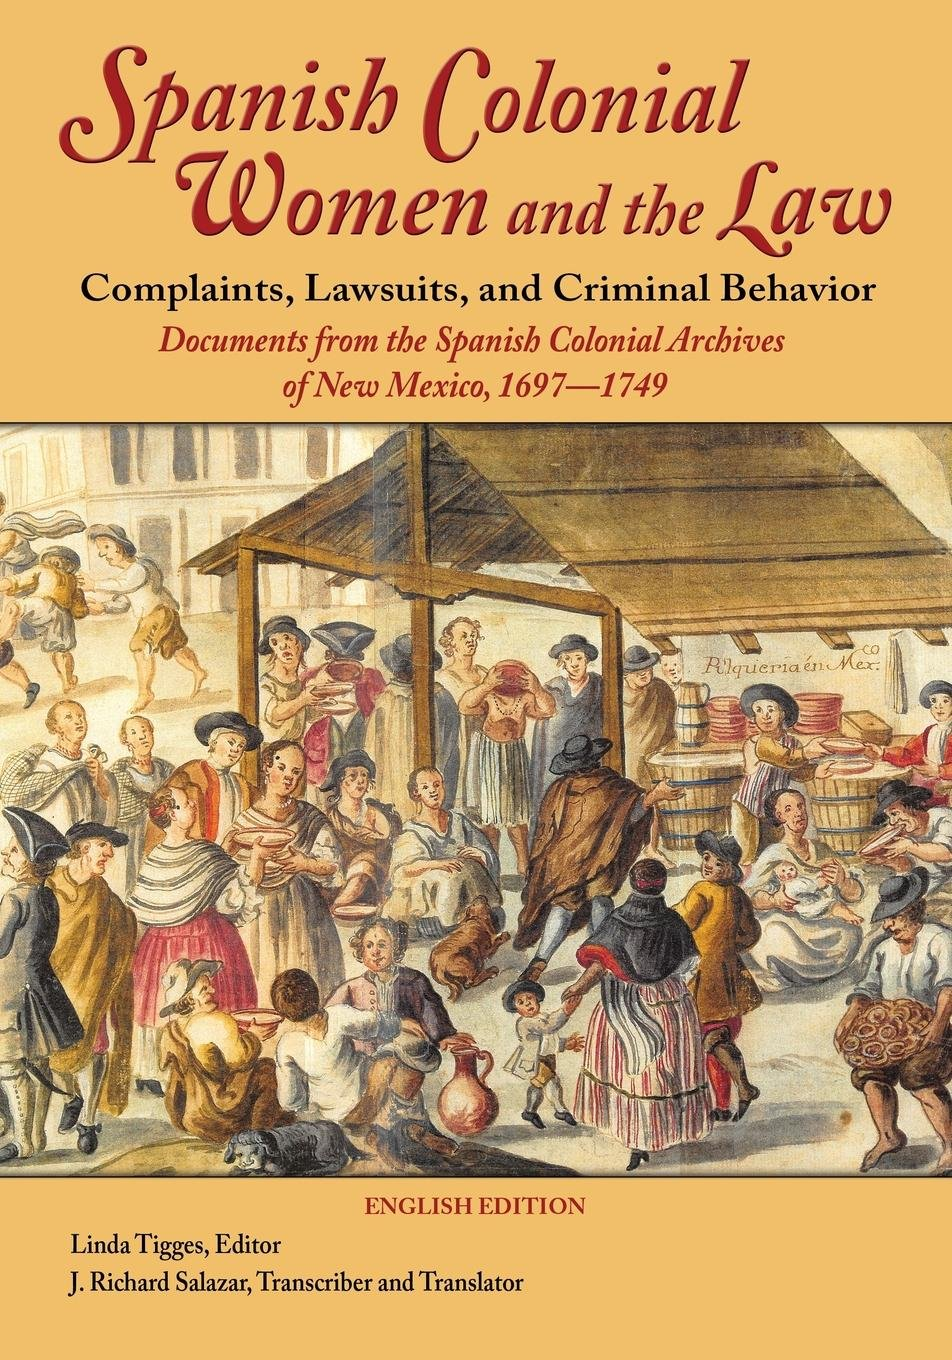 Spanish Colonial Women and the Law: Complaints, Lawsuits, and Criminal Behavior (English Edition) pdf epub